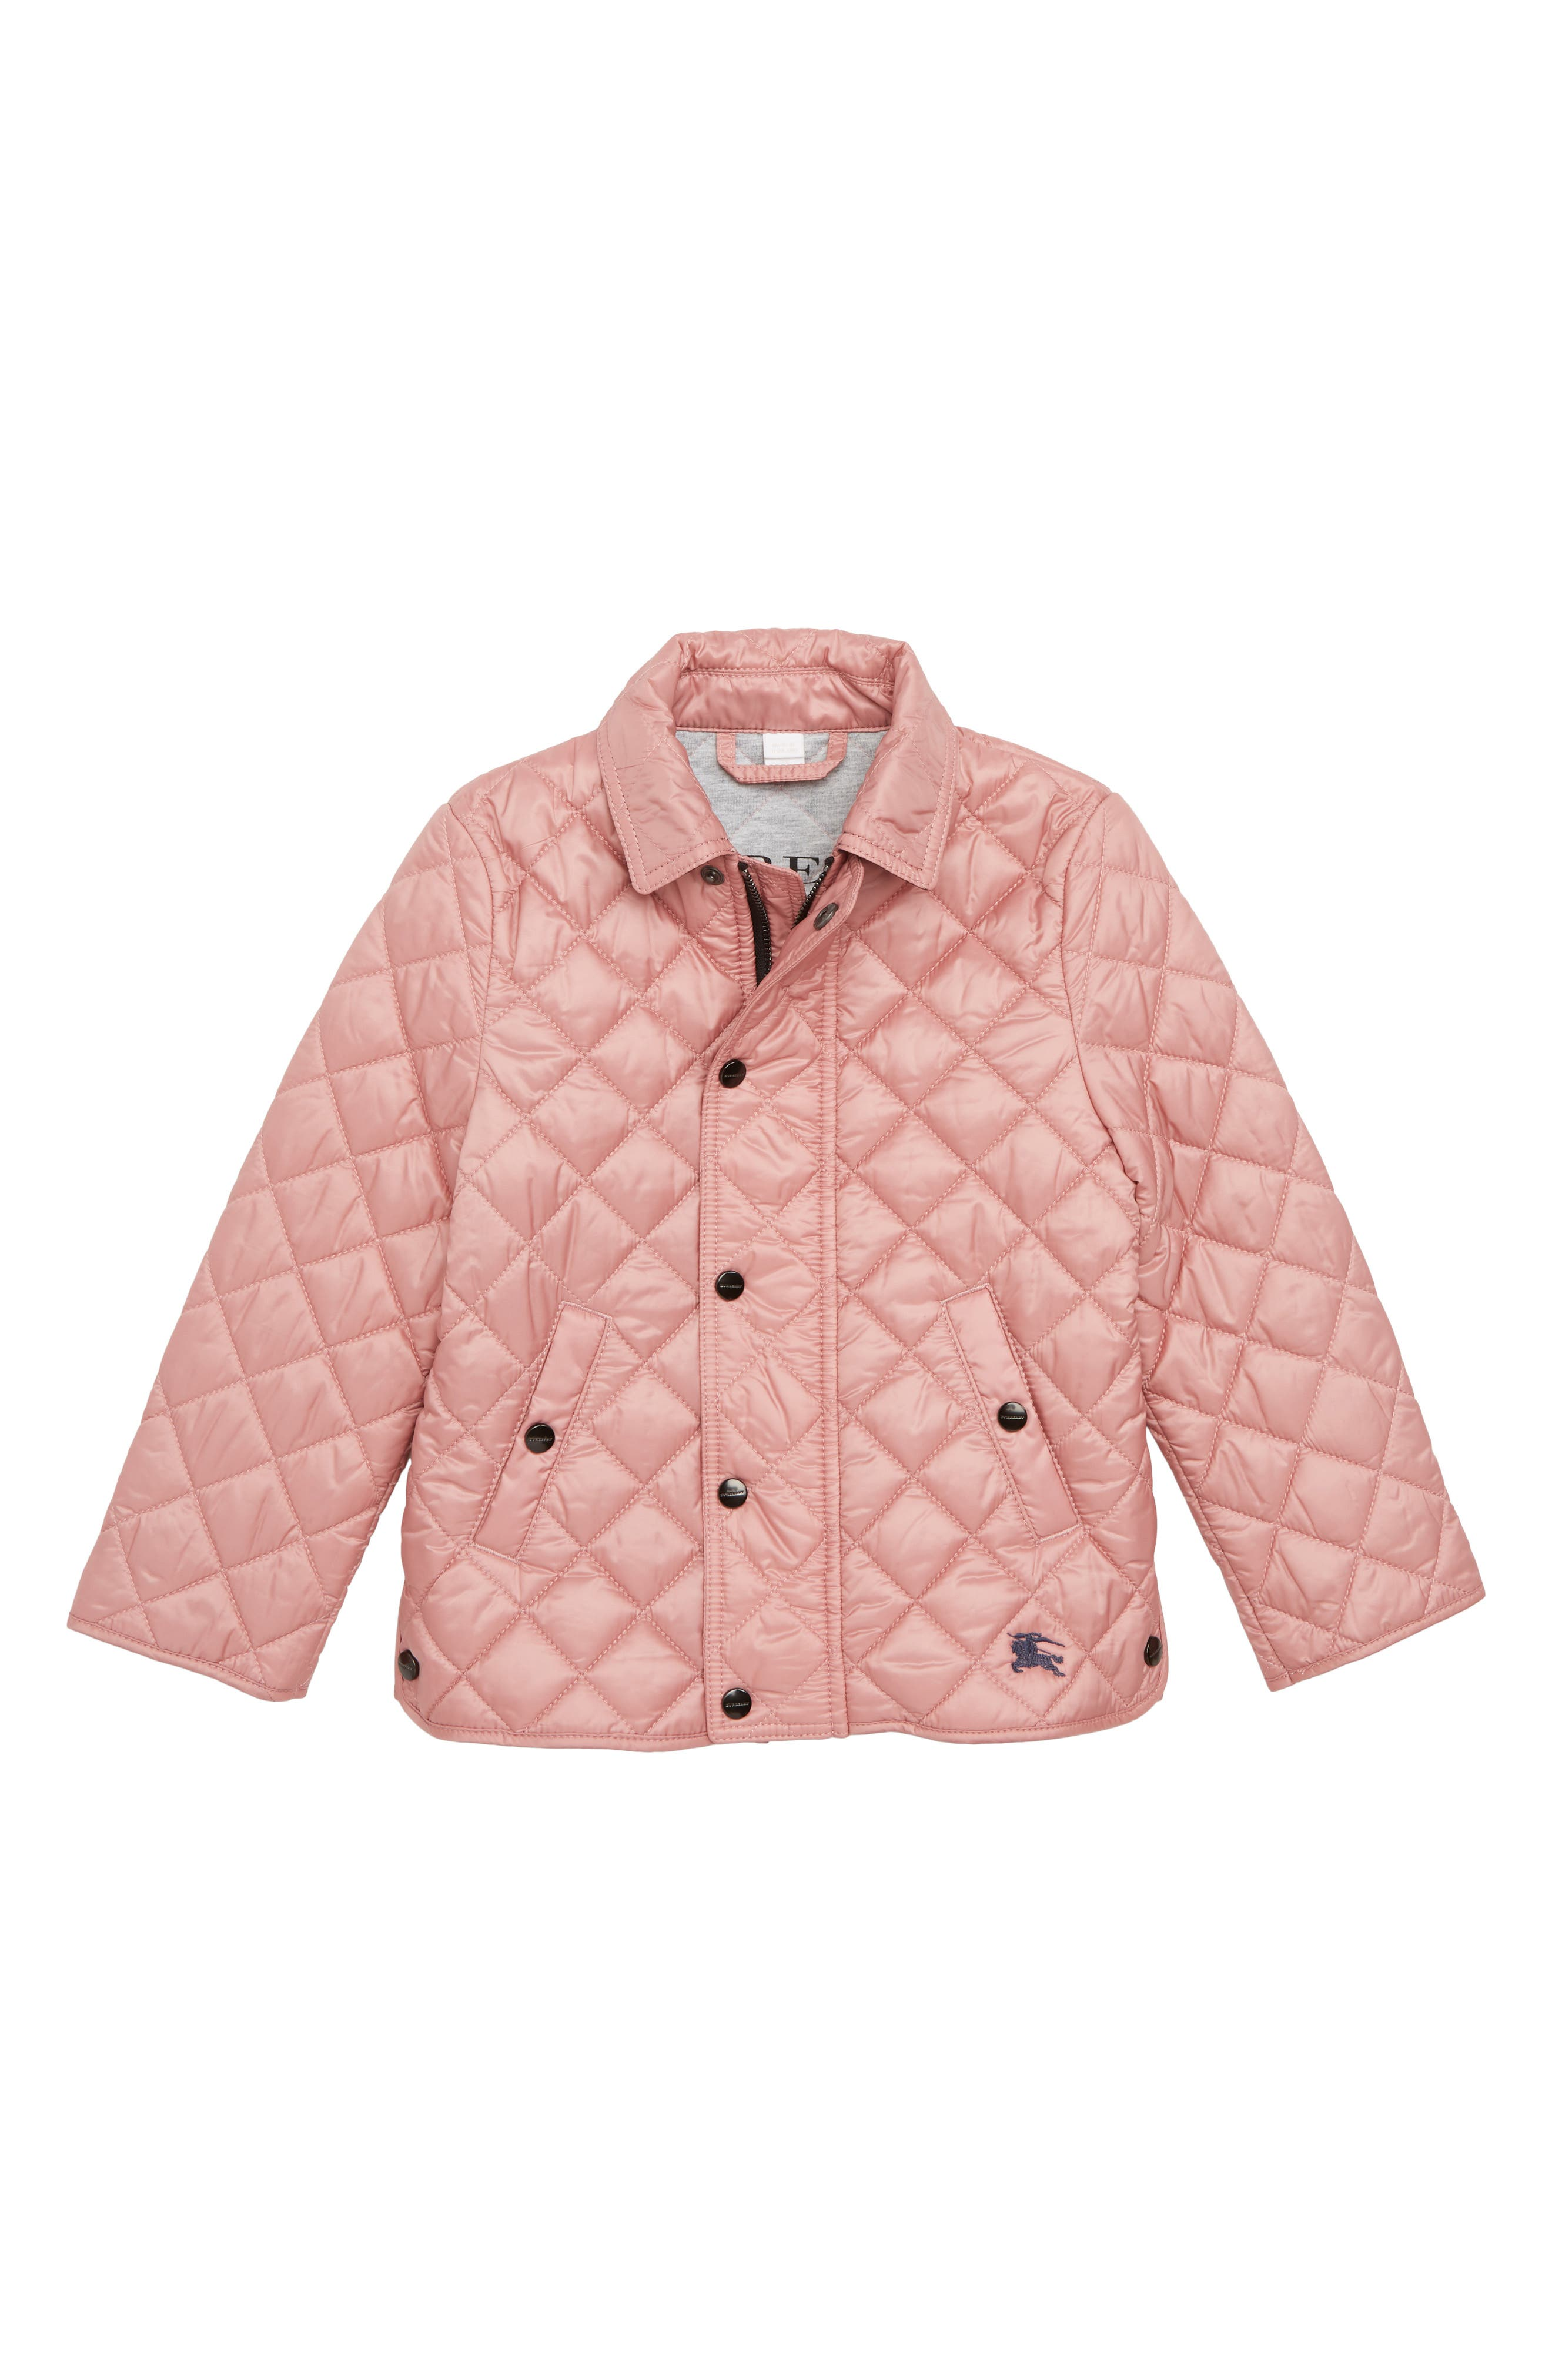 Diamond Quilted Jacket,                             Main thumbnail 1, color,                             PALE ASH ROSE